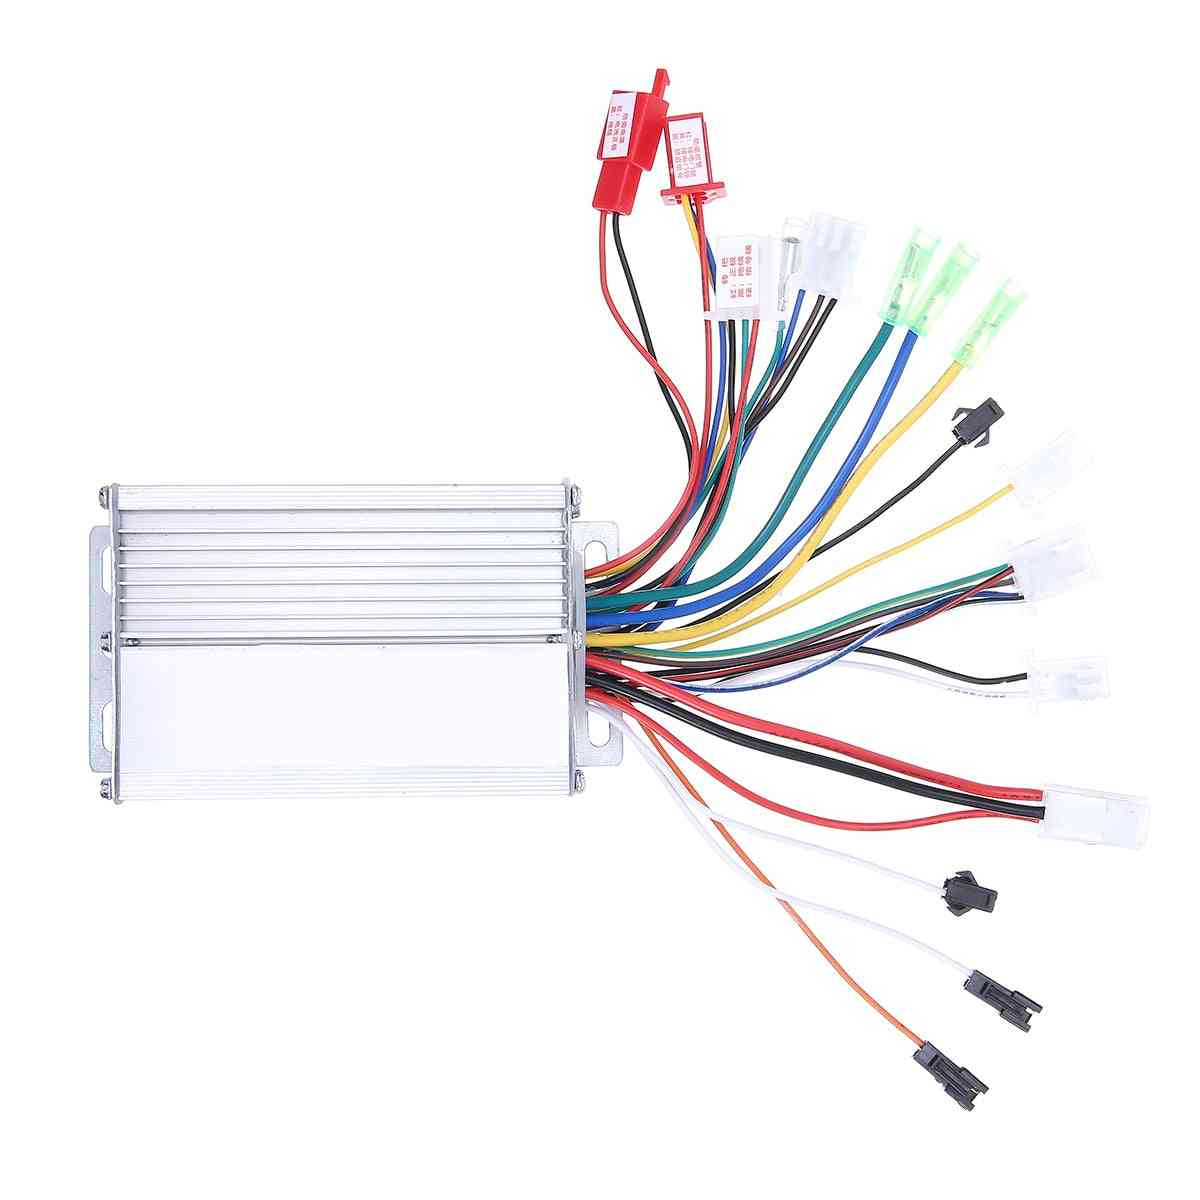 350w Brushless Dc Motor Regulator - Speed Controller For Electric Bicycle